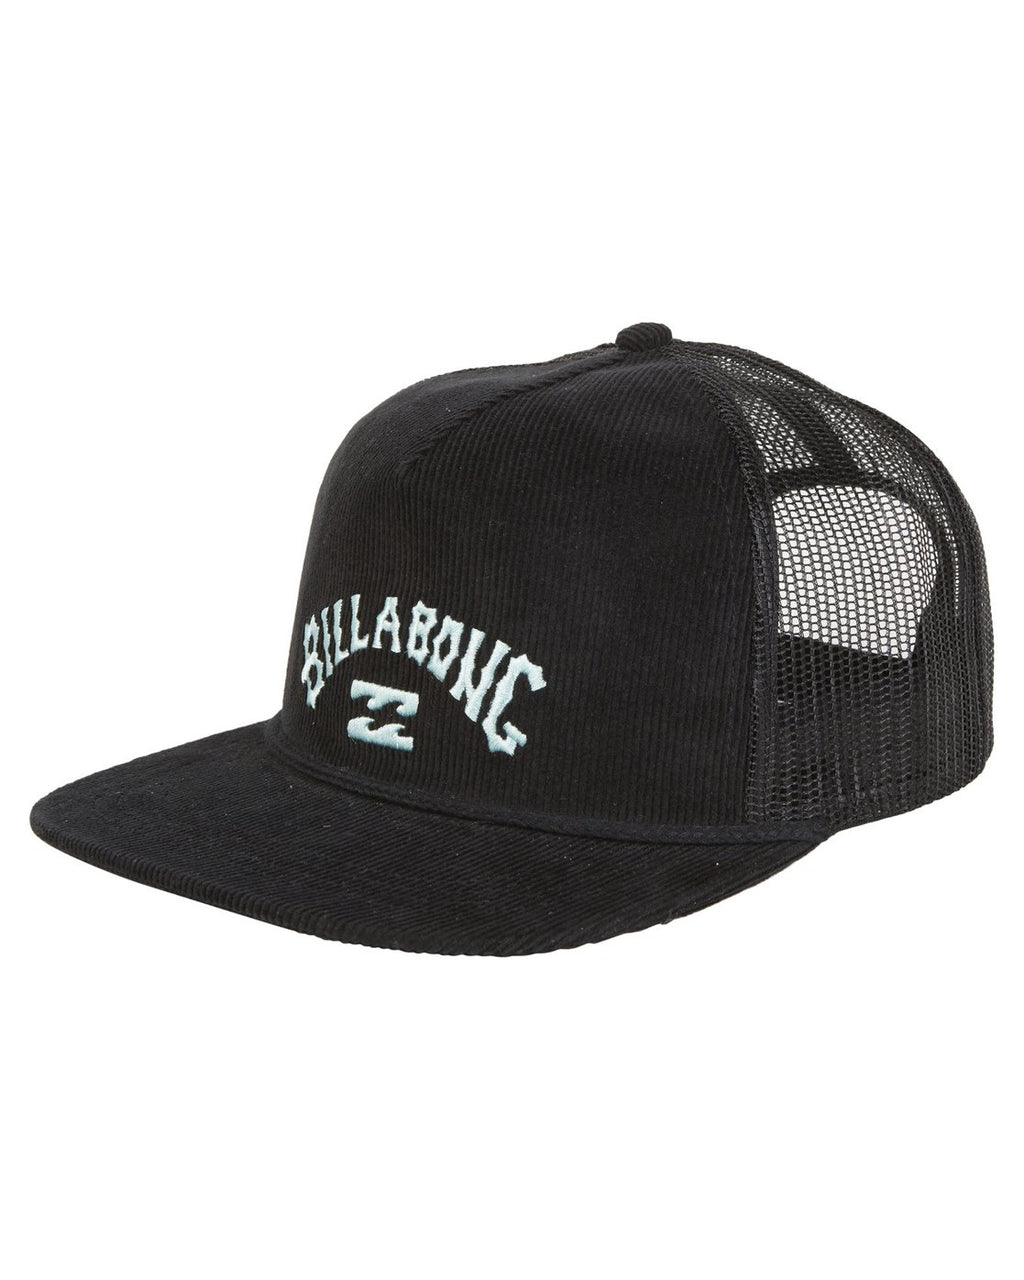 Billabong - Alliance Trucker, Stealth